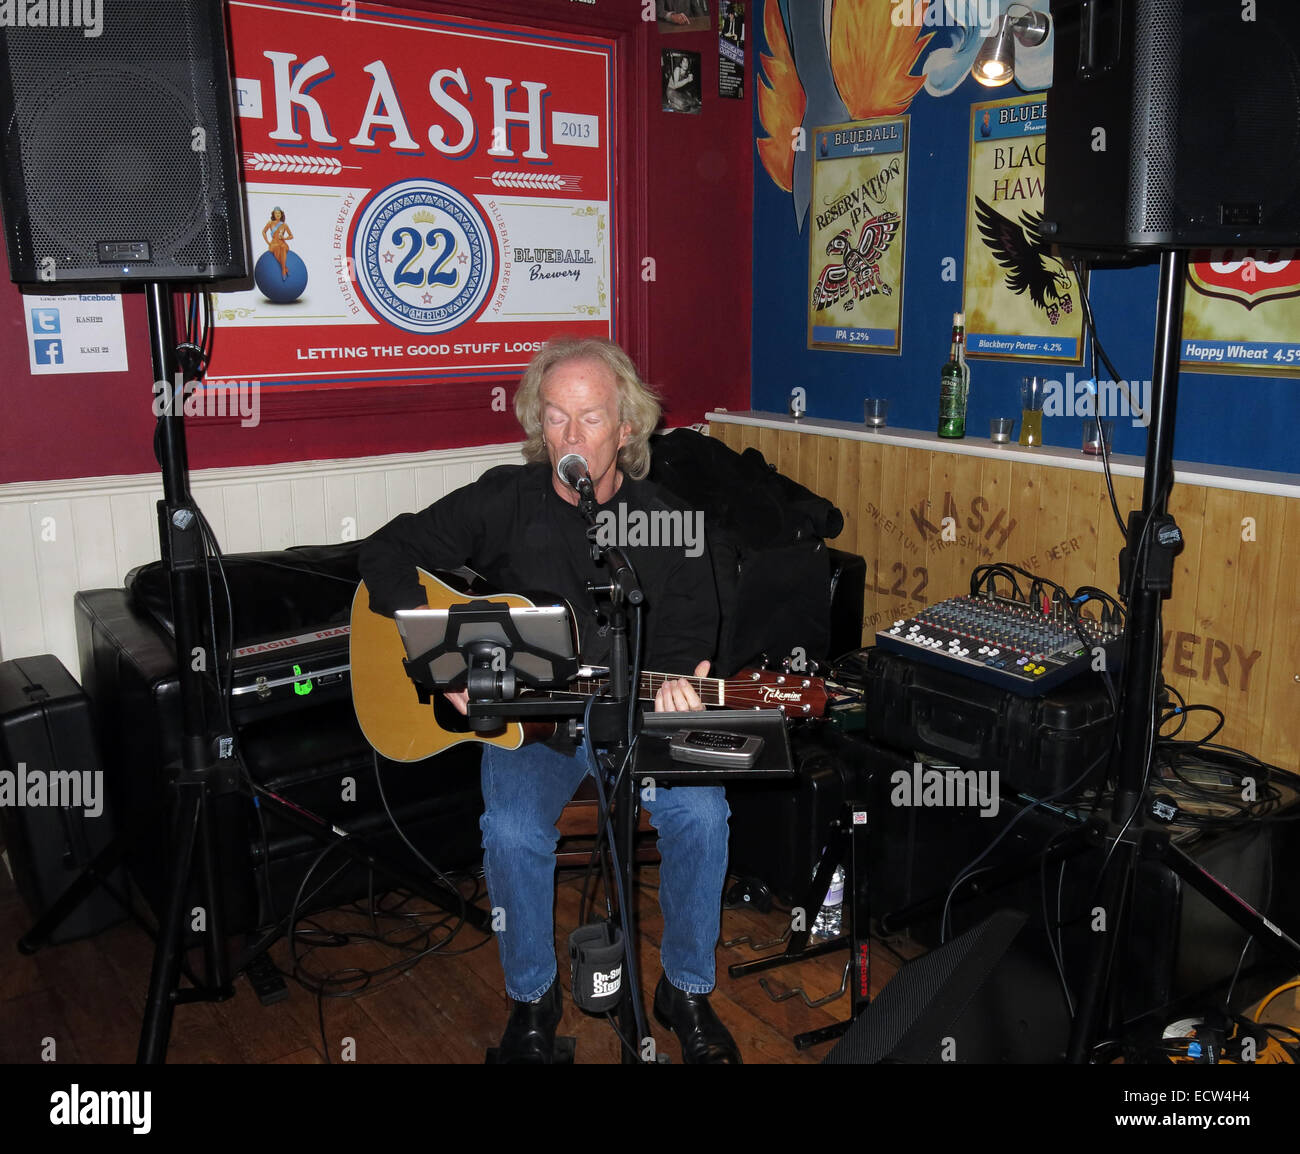 Music at KAsh22, Frodsham,Cheshire, England,UK - Stock Image